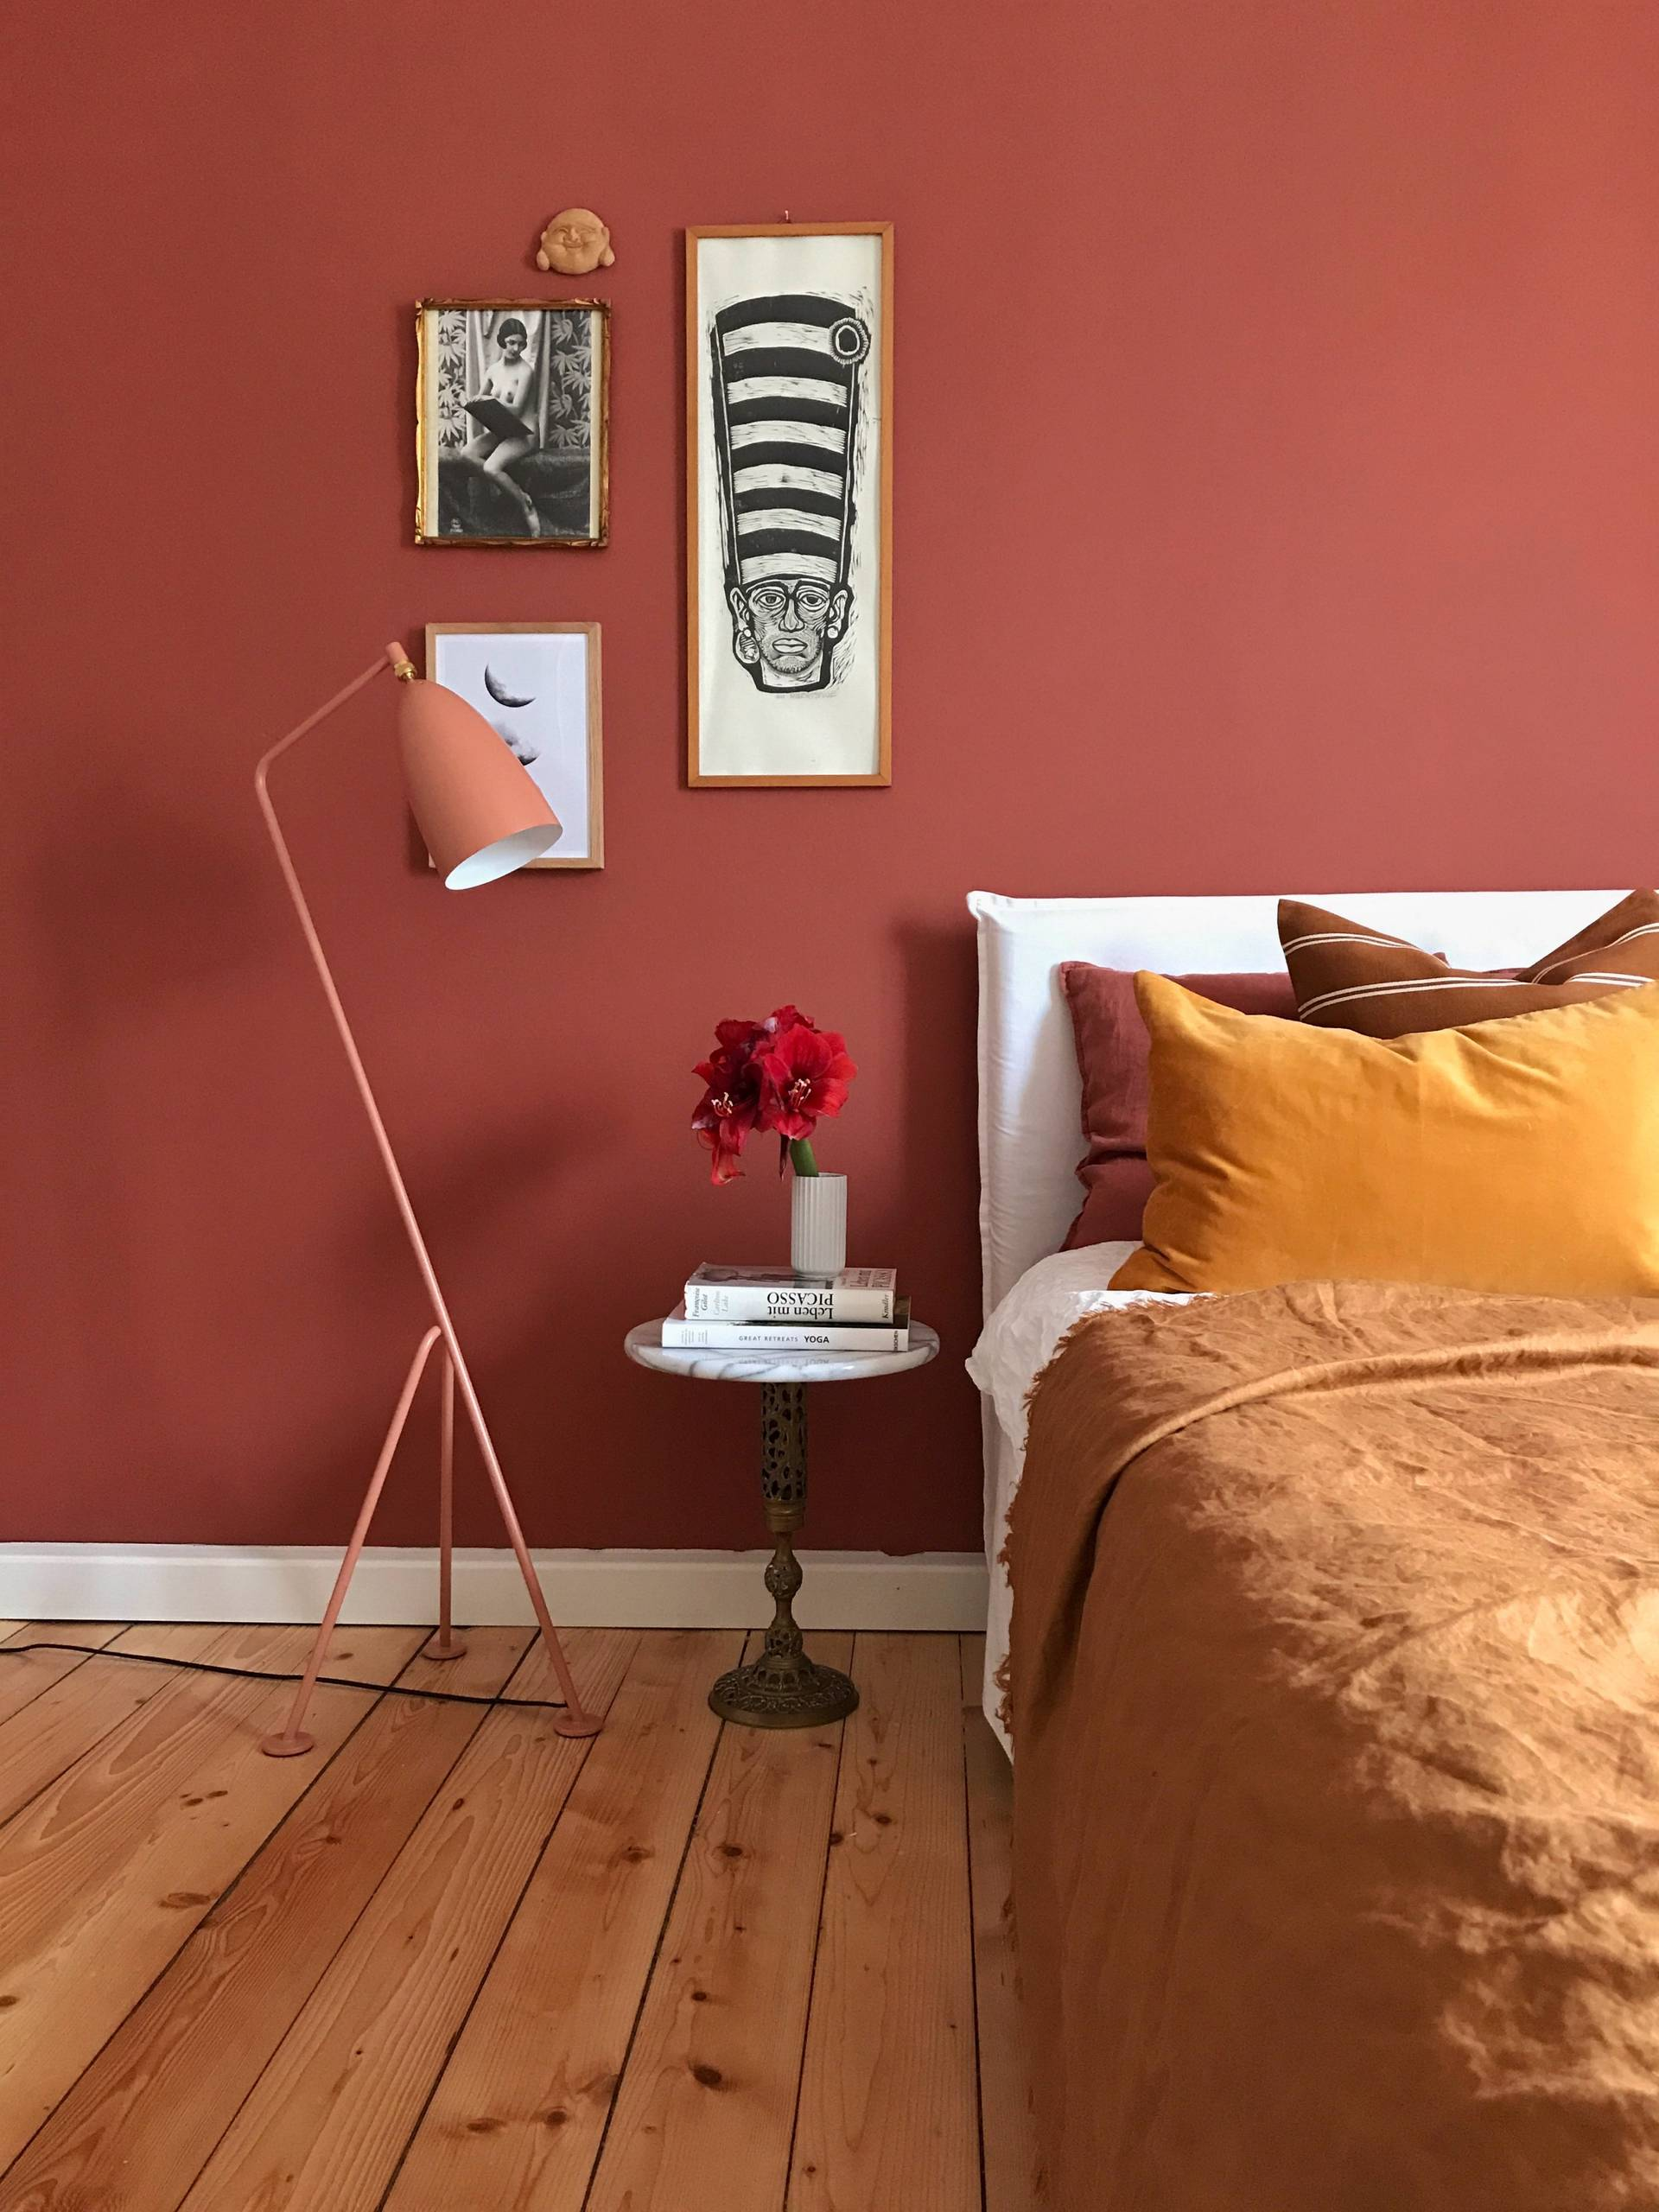 75 Beautiful Bedroom With Red Walls Pictures Ideas February 2021 Houzz